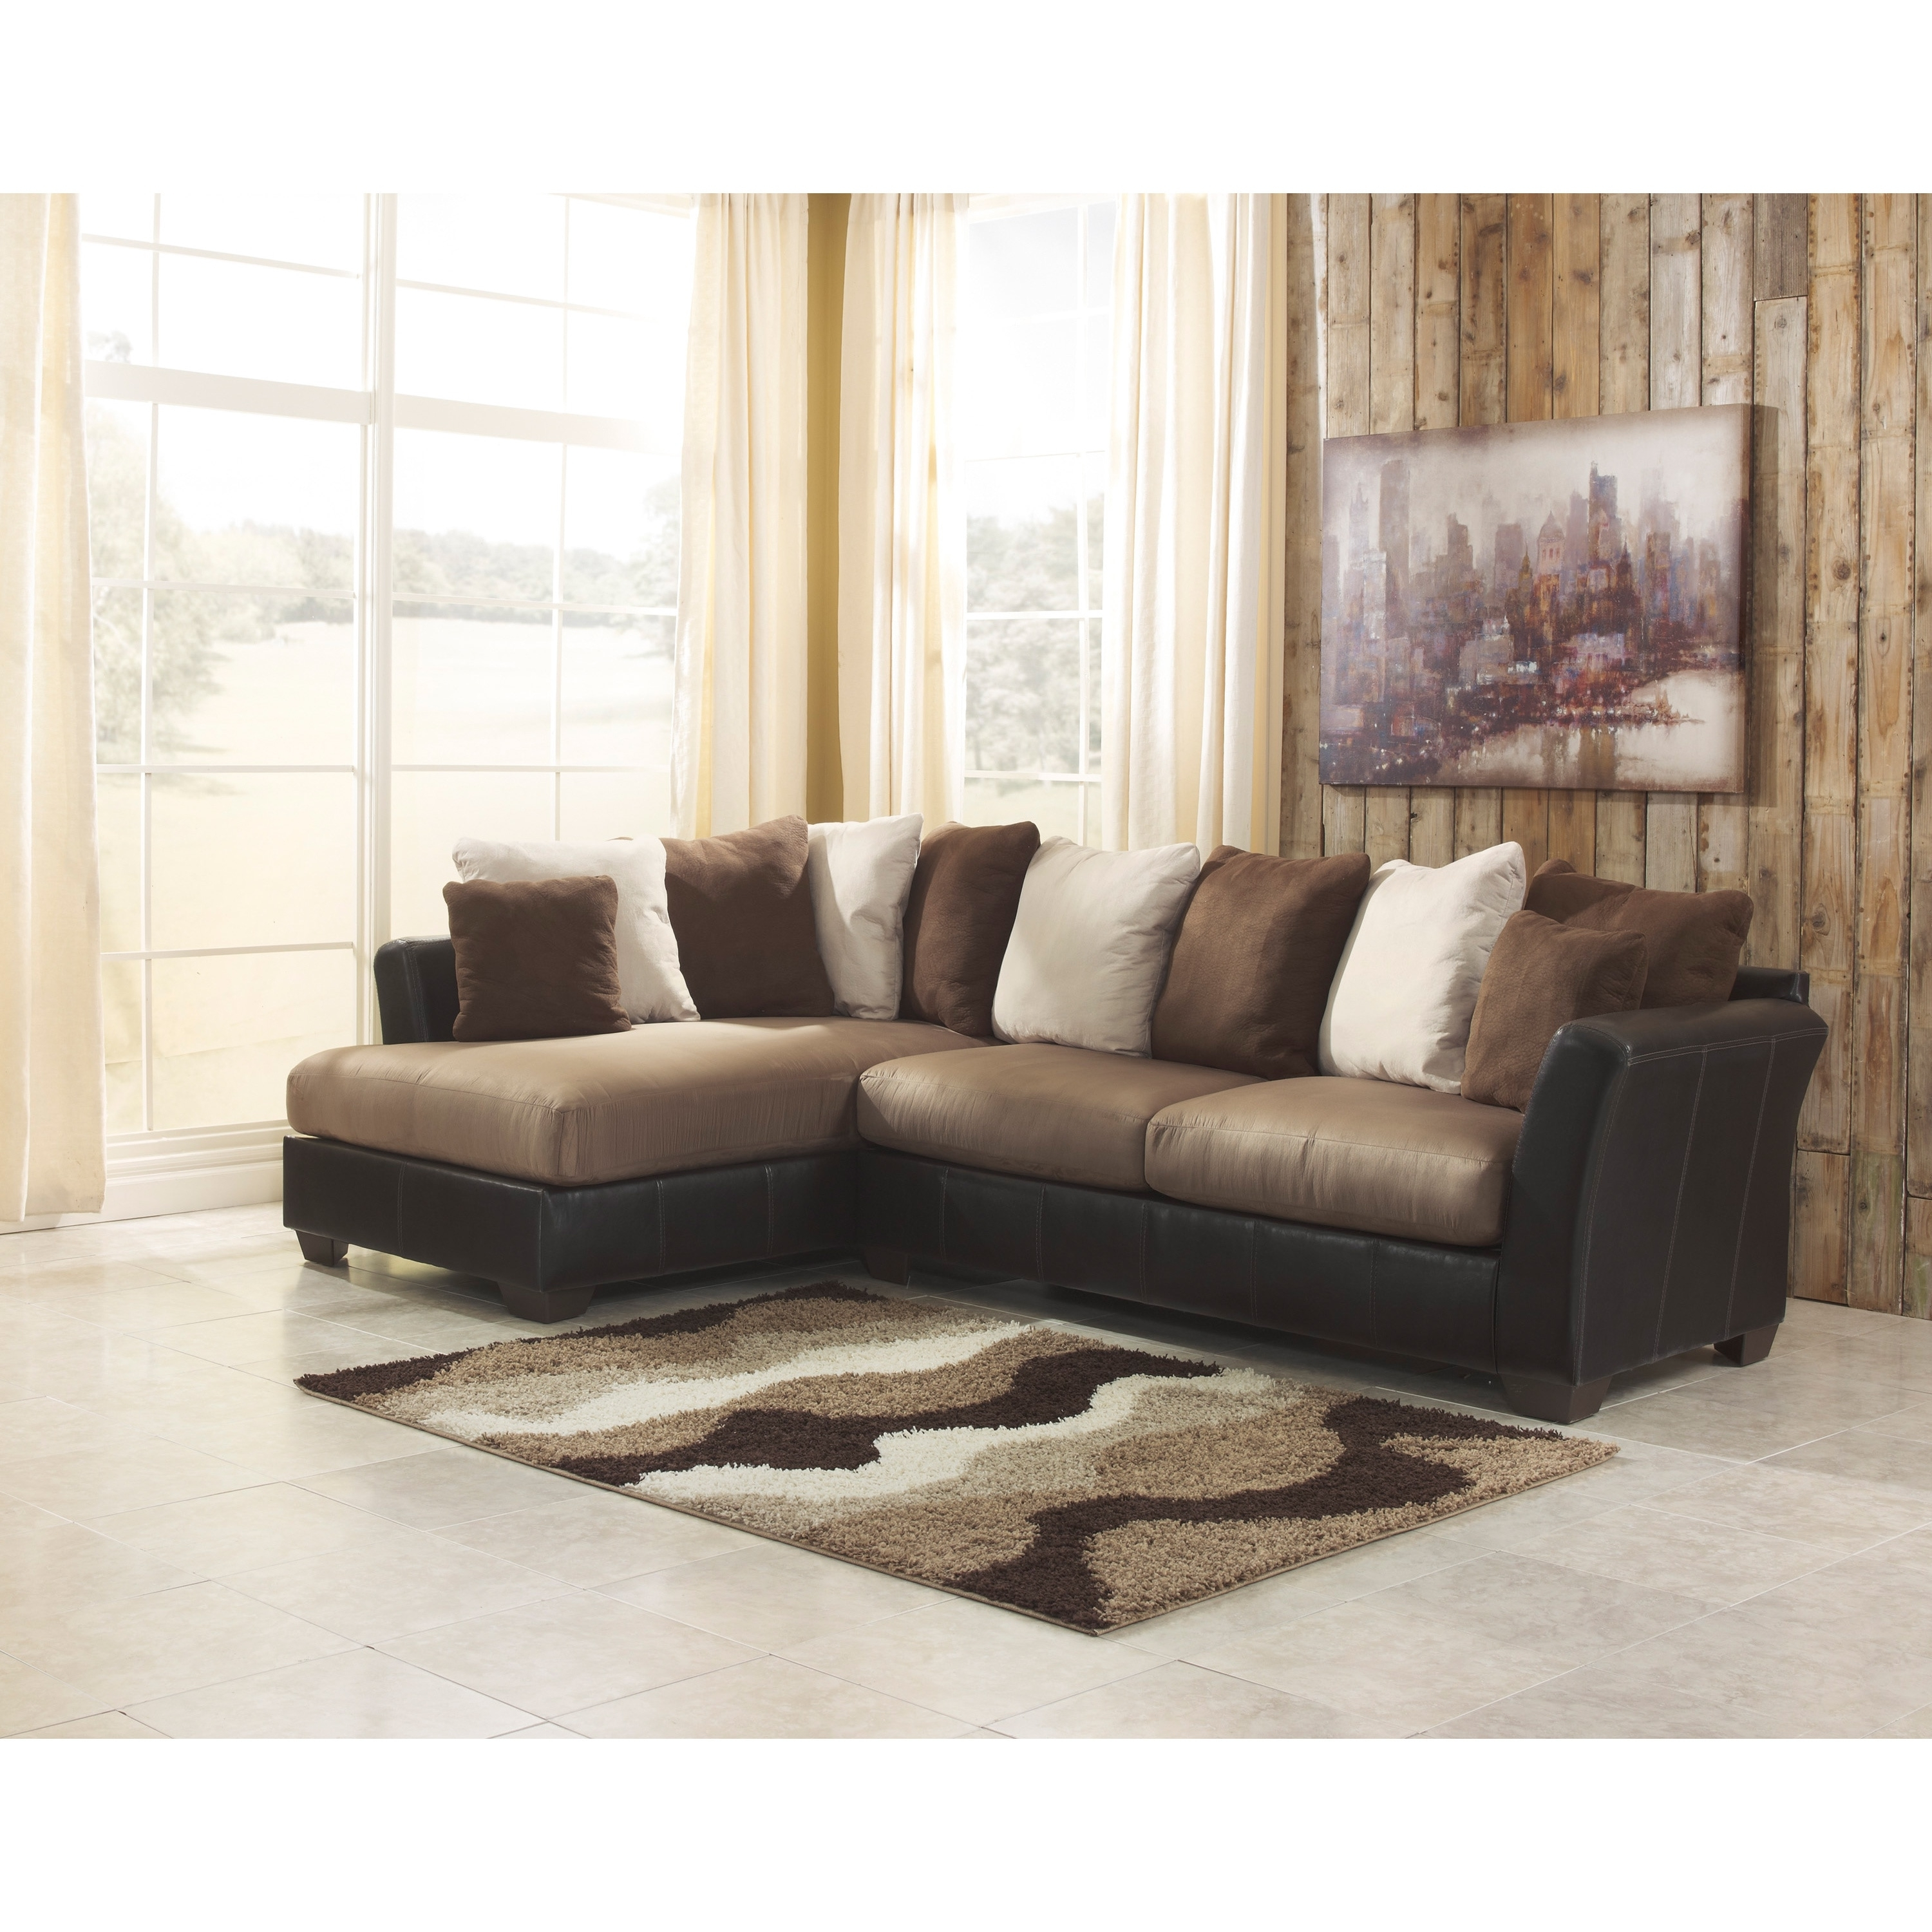 Famous Signature Designashley Masoli 2 Piece Mocha Corner Chaise And With Regard To 2 Piece Sectionals With Chaise (View 13 of 15)